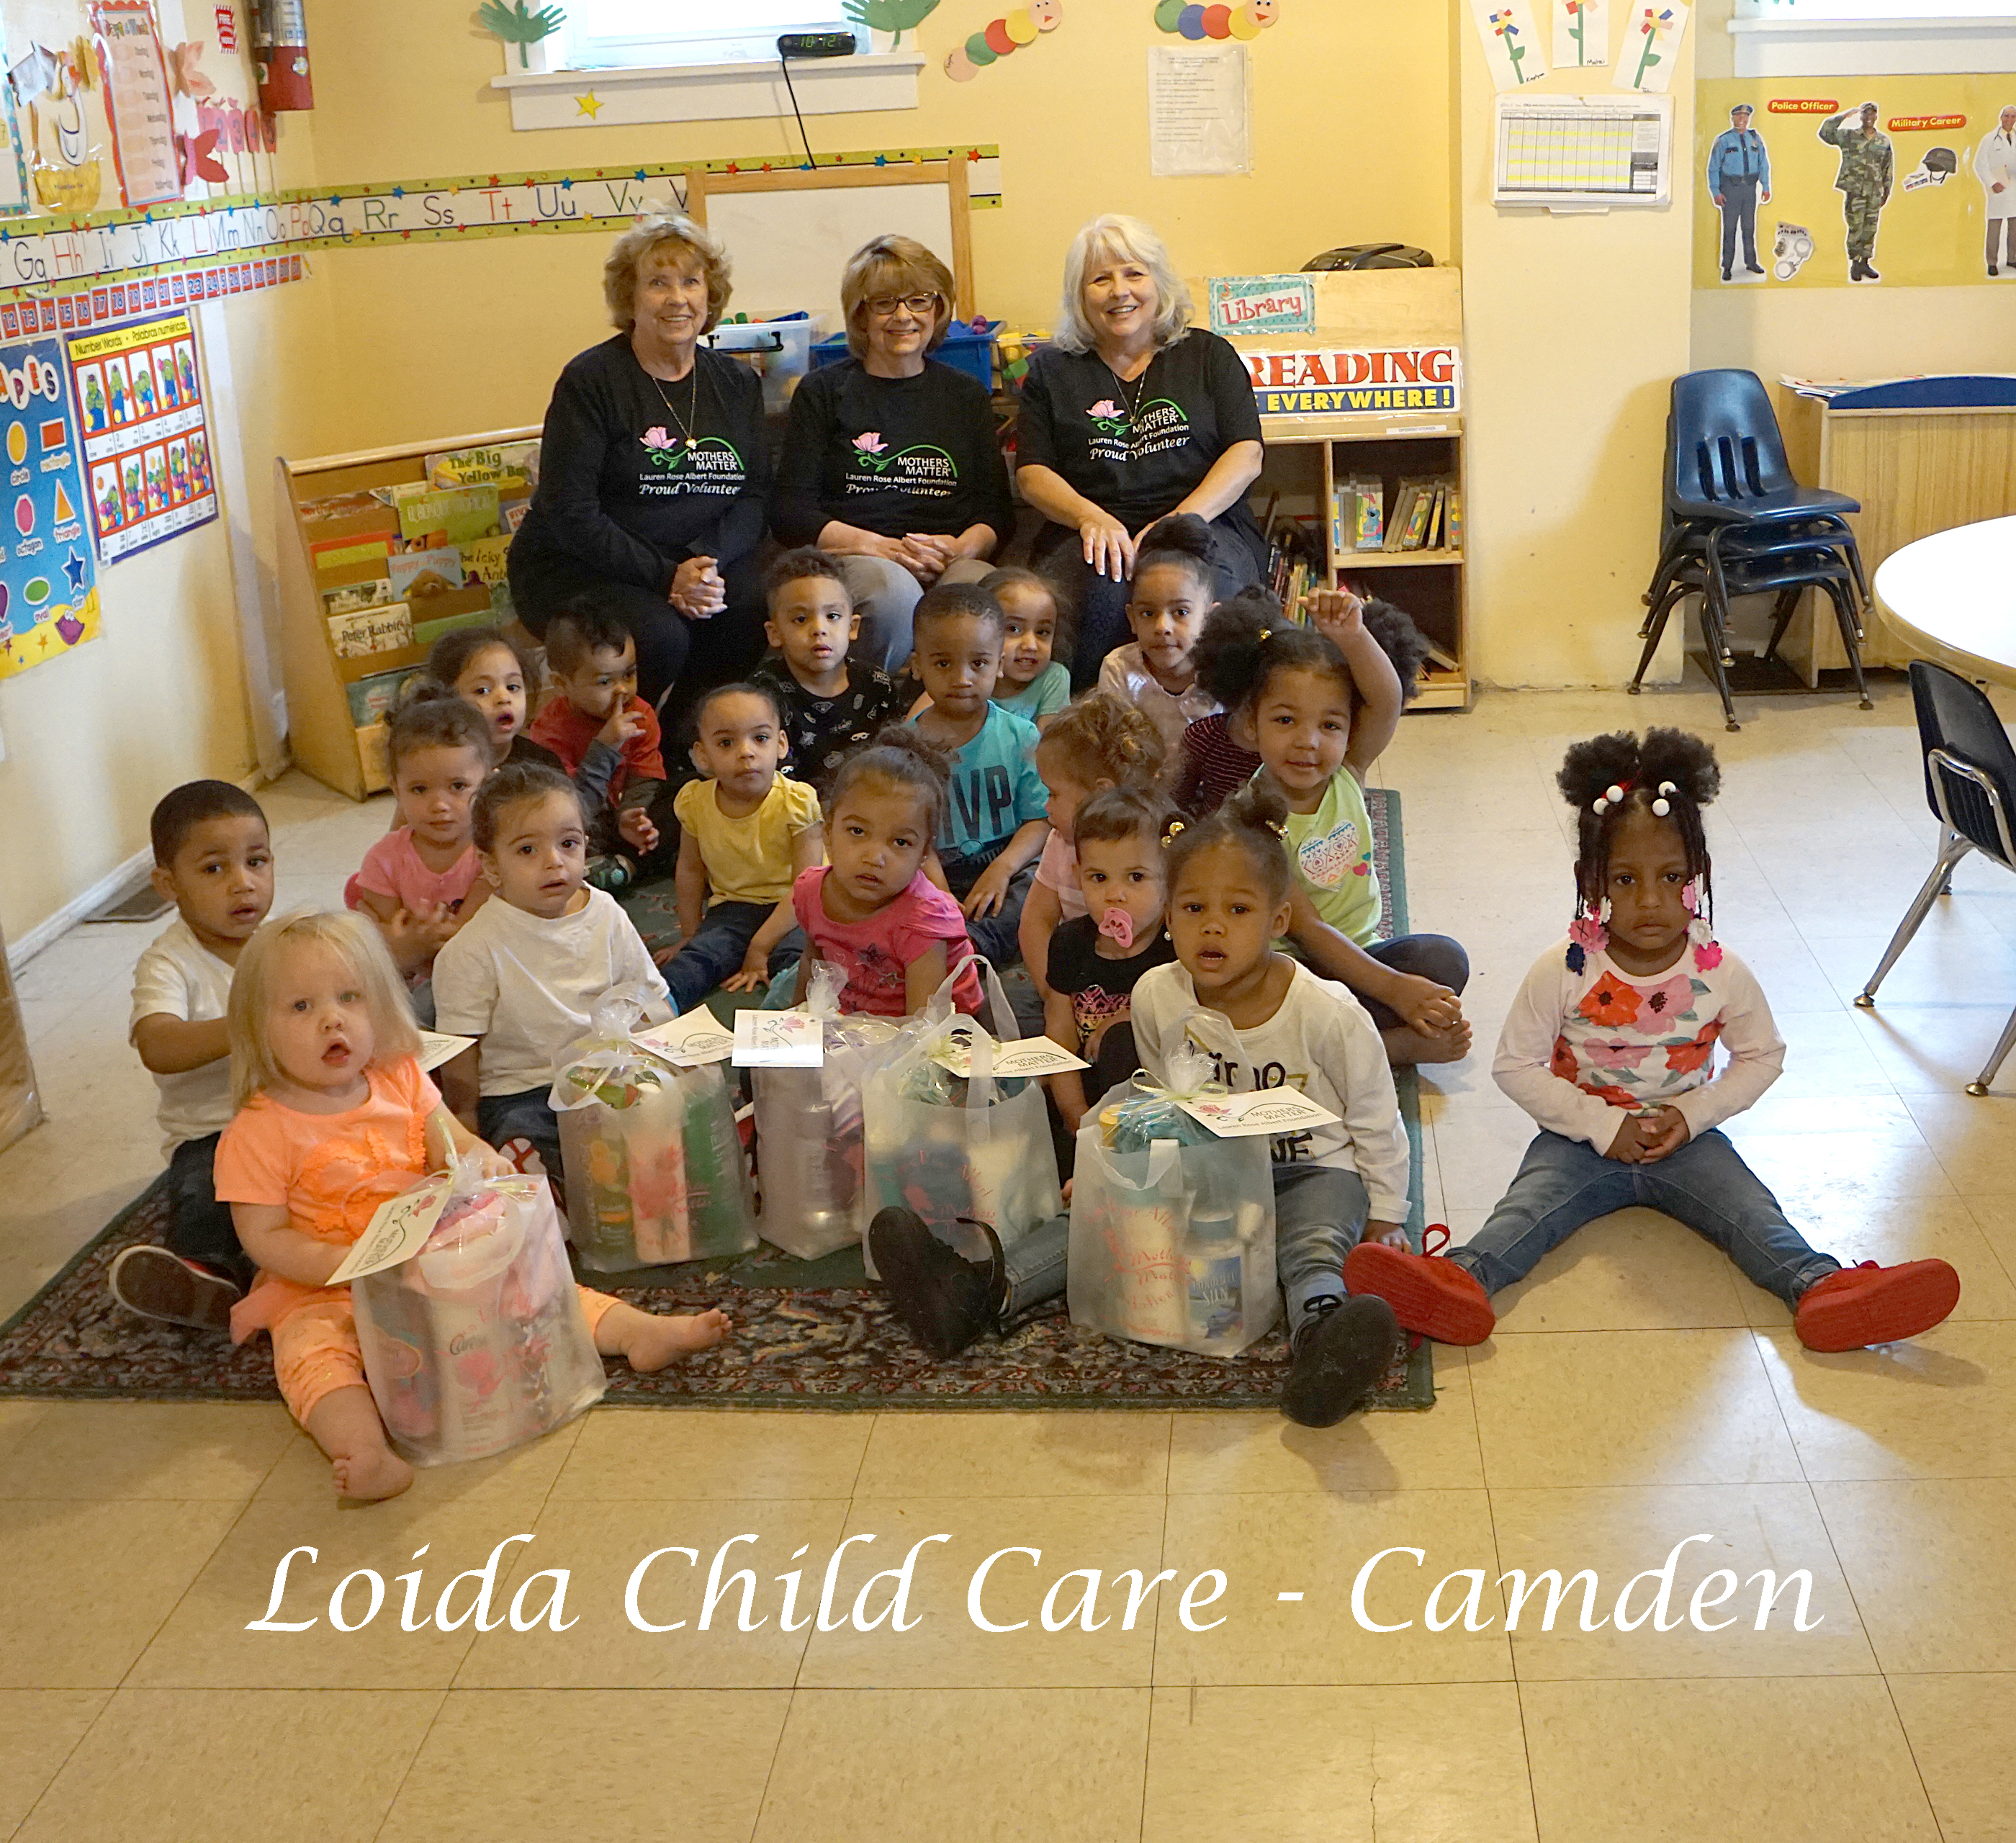 Loida Child Care - Camden